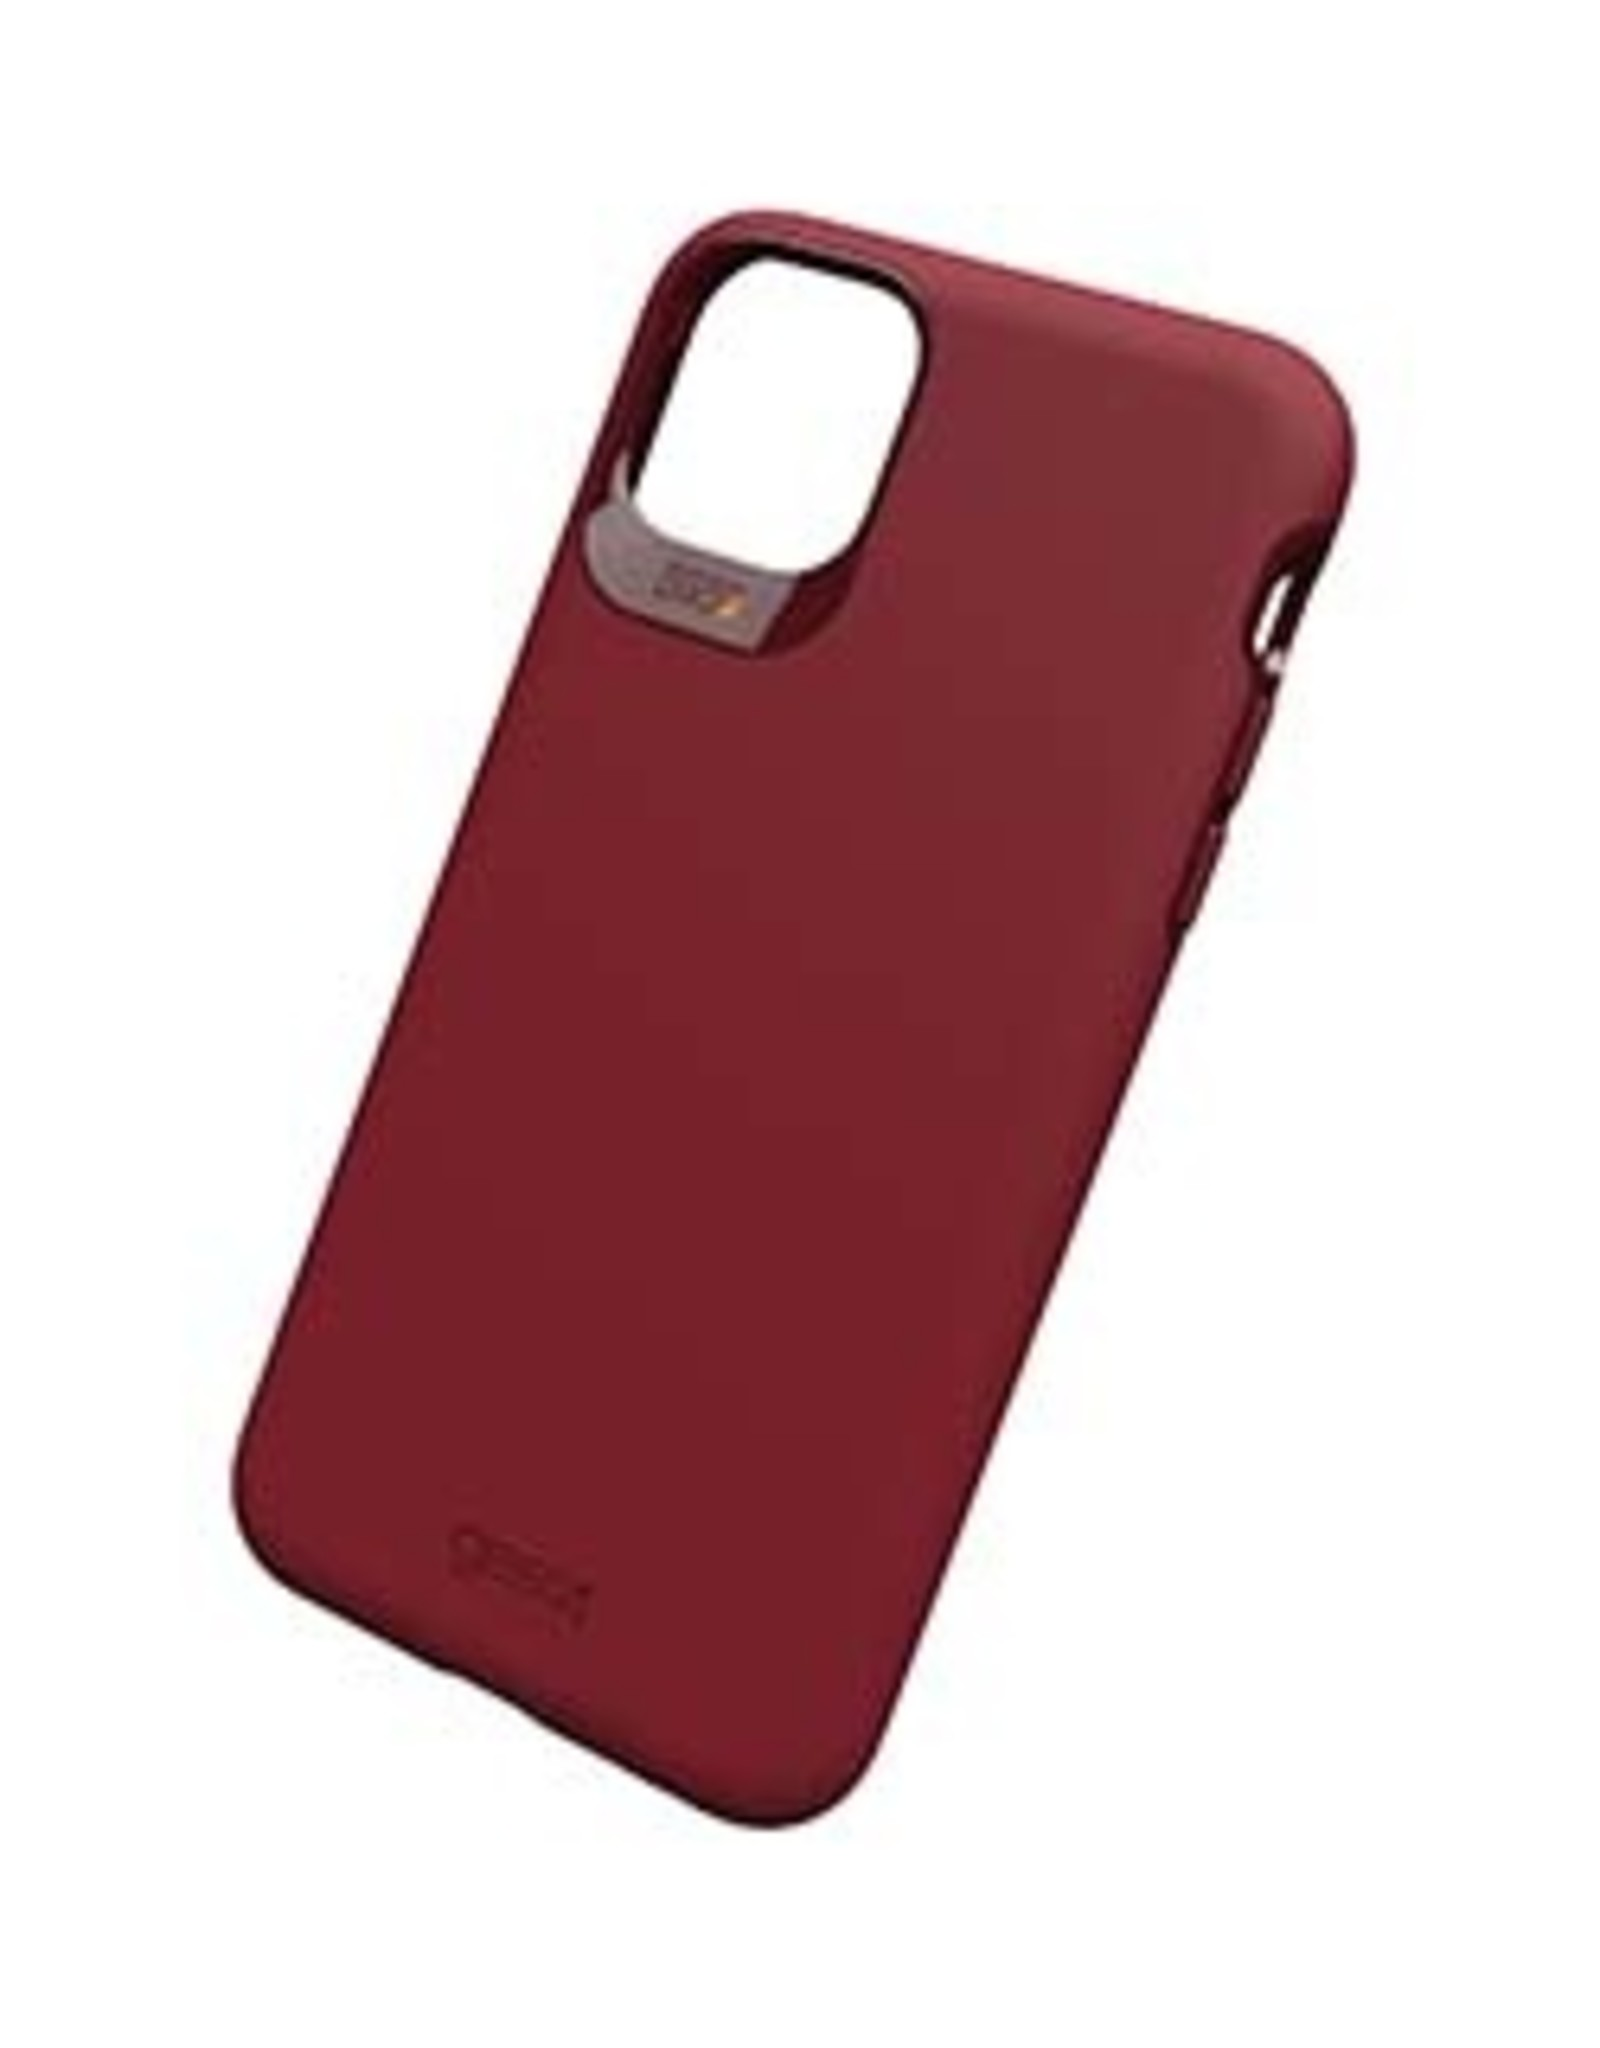 GEAR4 GEAR4 | iPhone 11 Pro Max  D3O Red (Wine) Holborn Case 15-04830